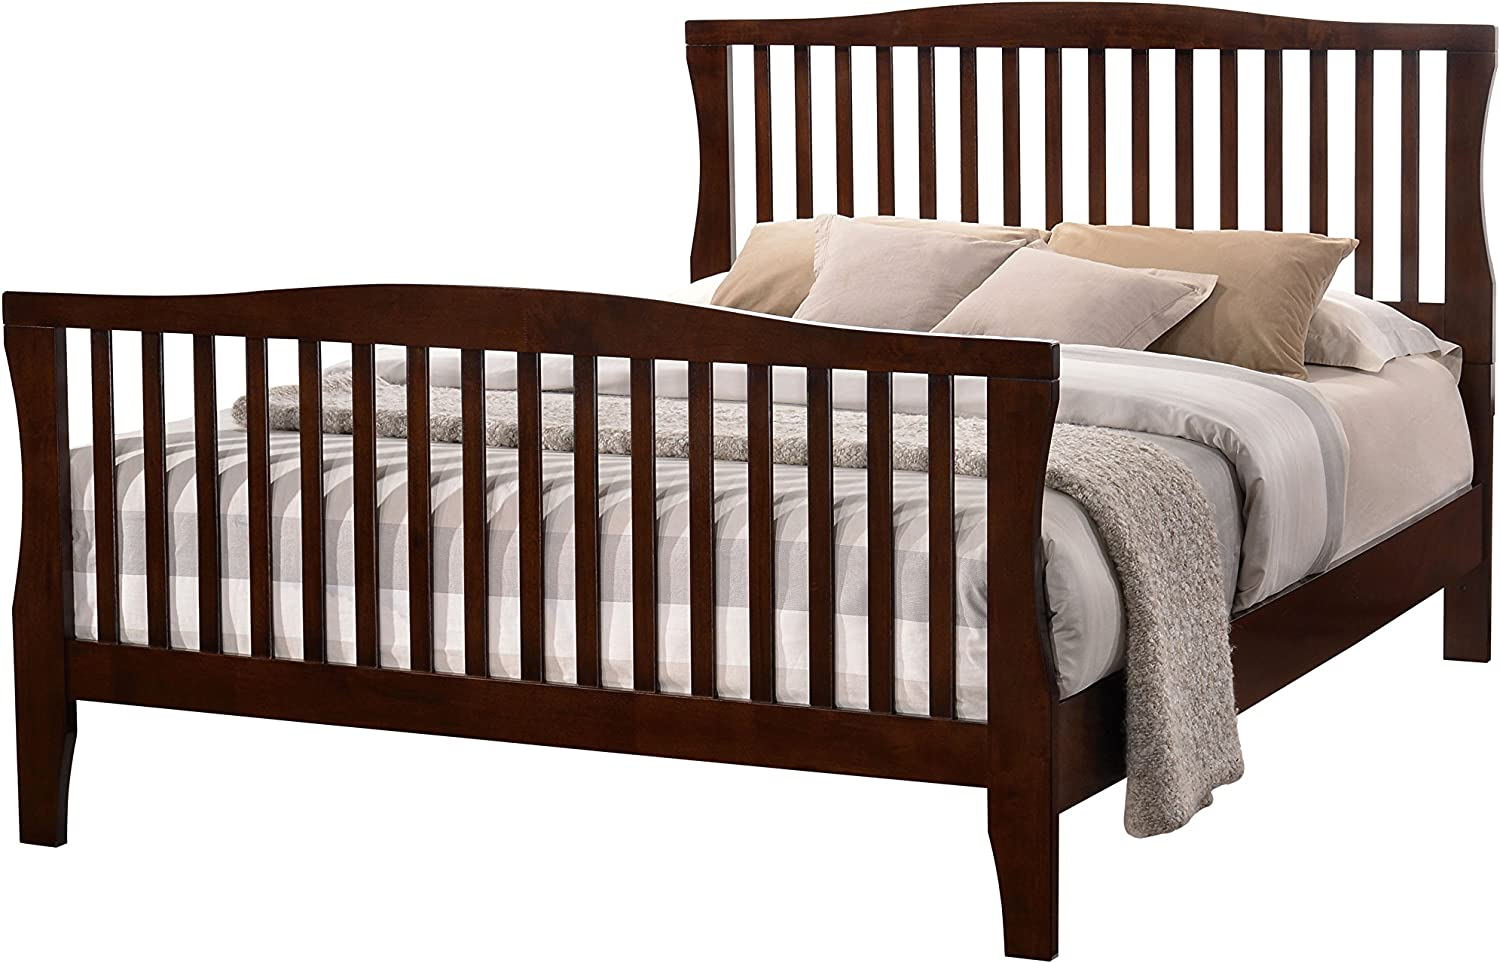 Furniture of America Furniture of America Reedling Contemporary Bed, California King, Brown Cherry